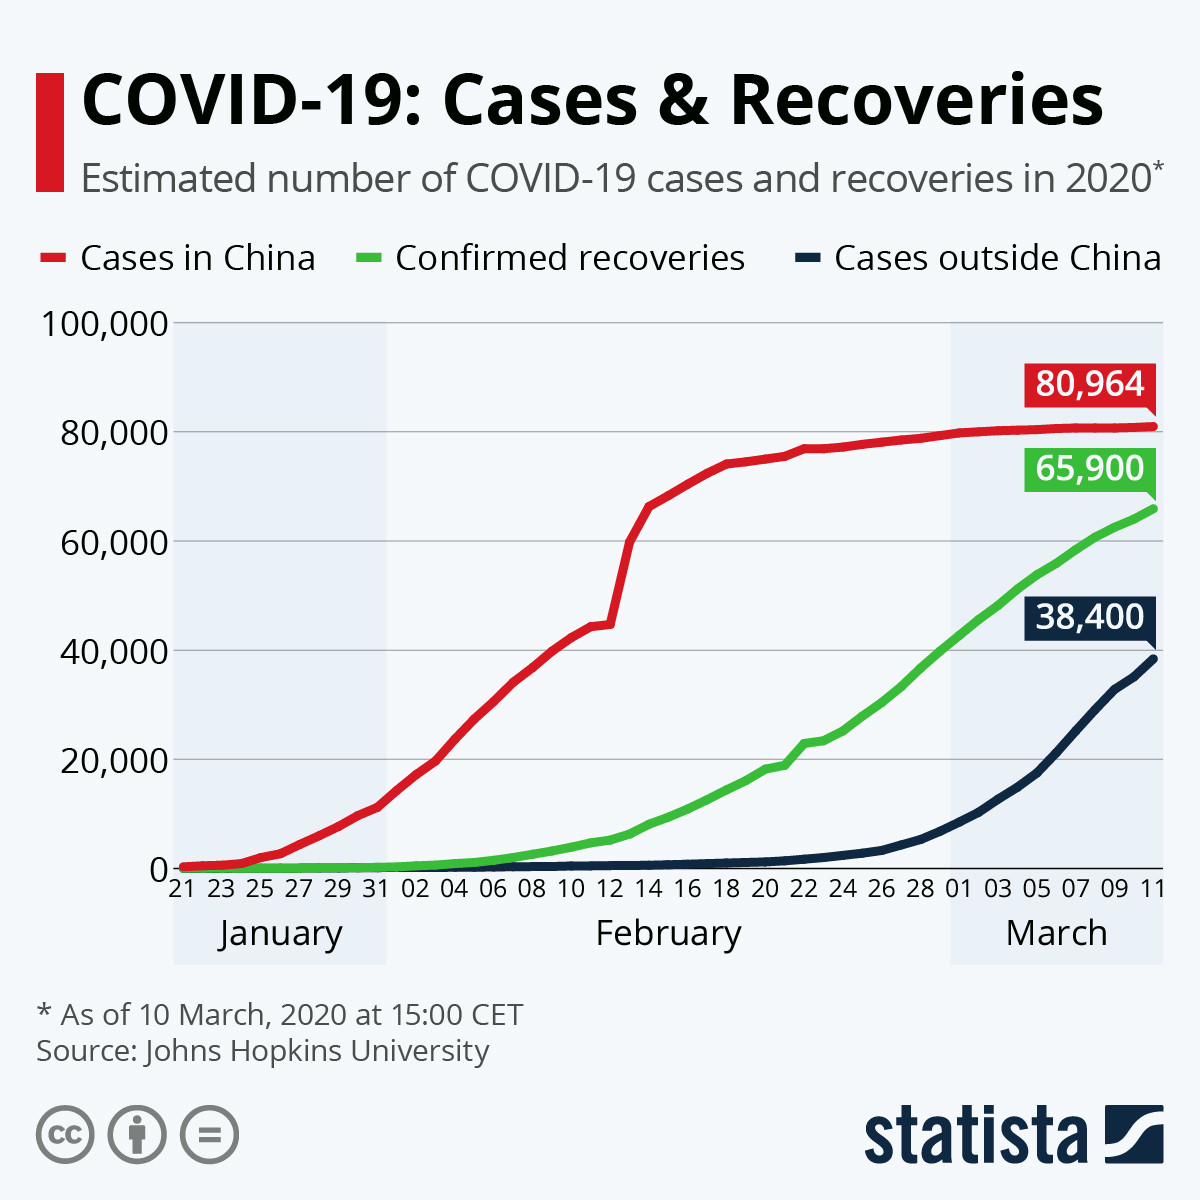 COVID-19: Cases and Recoveries